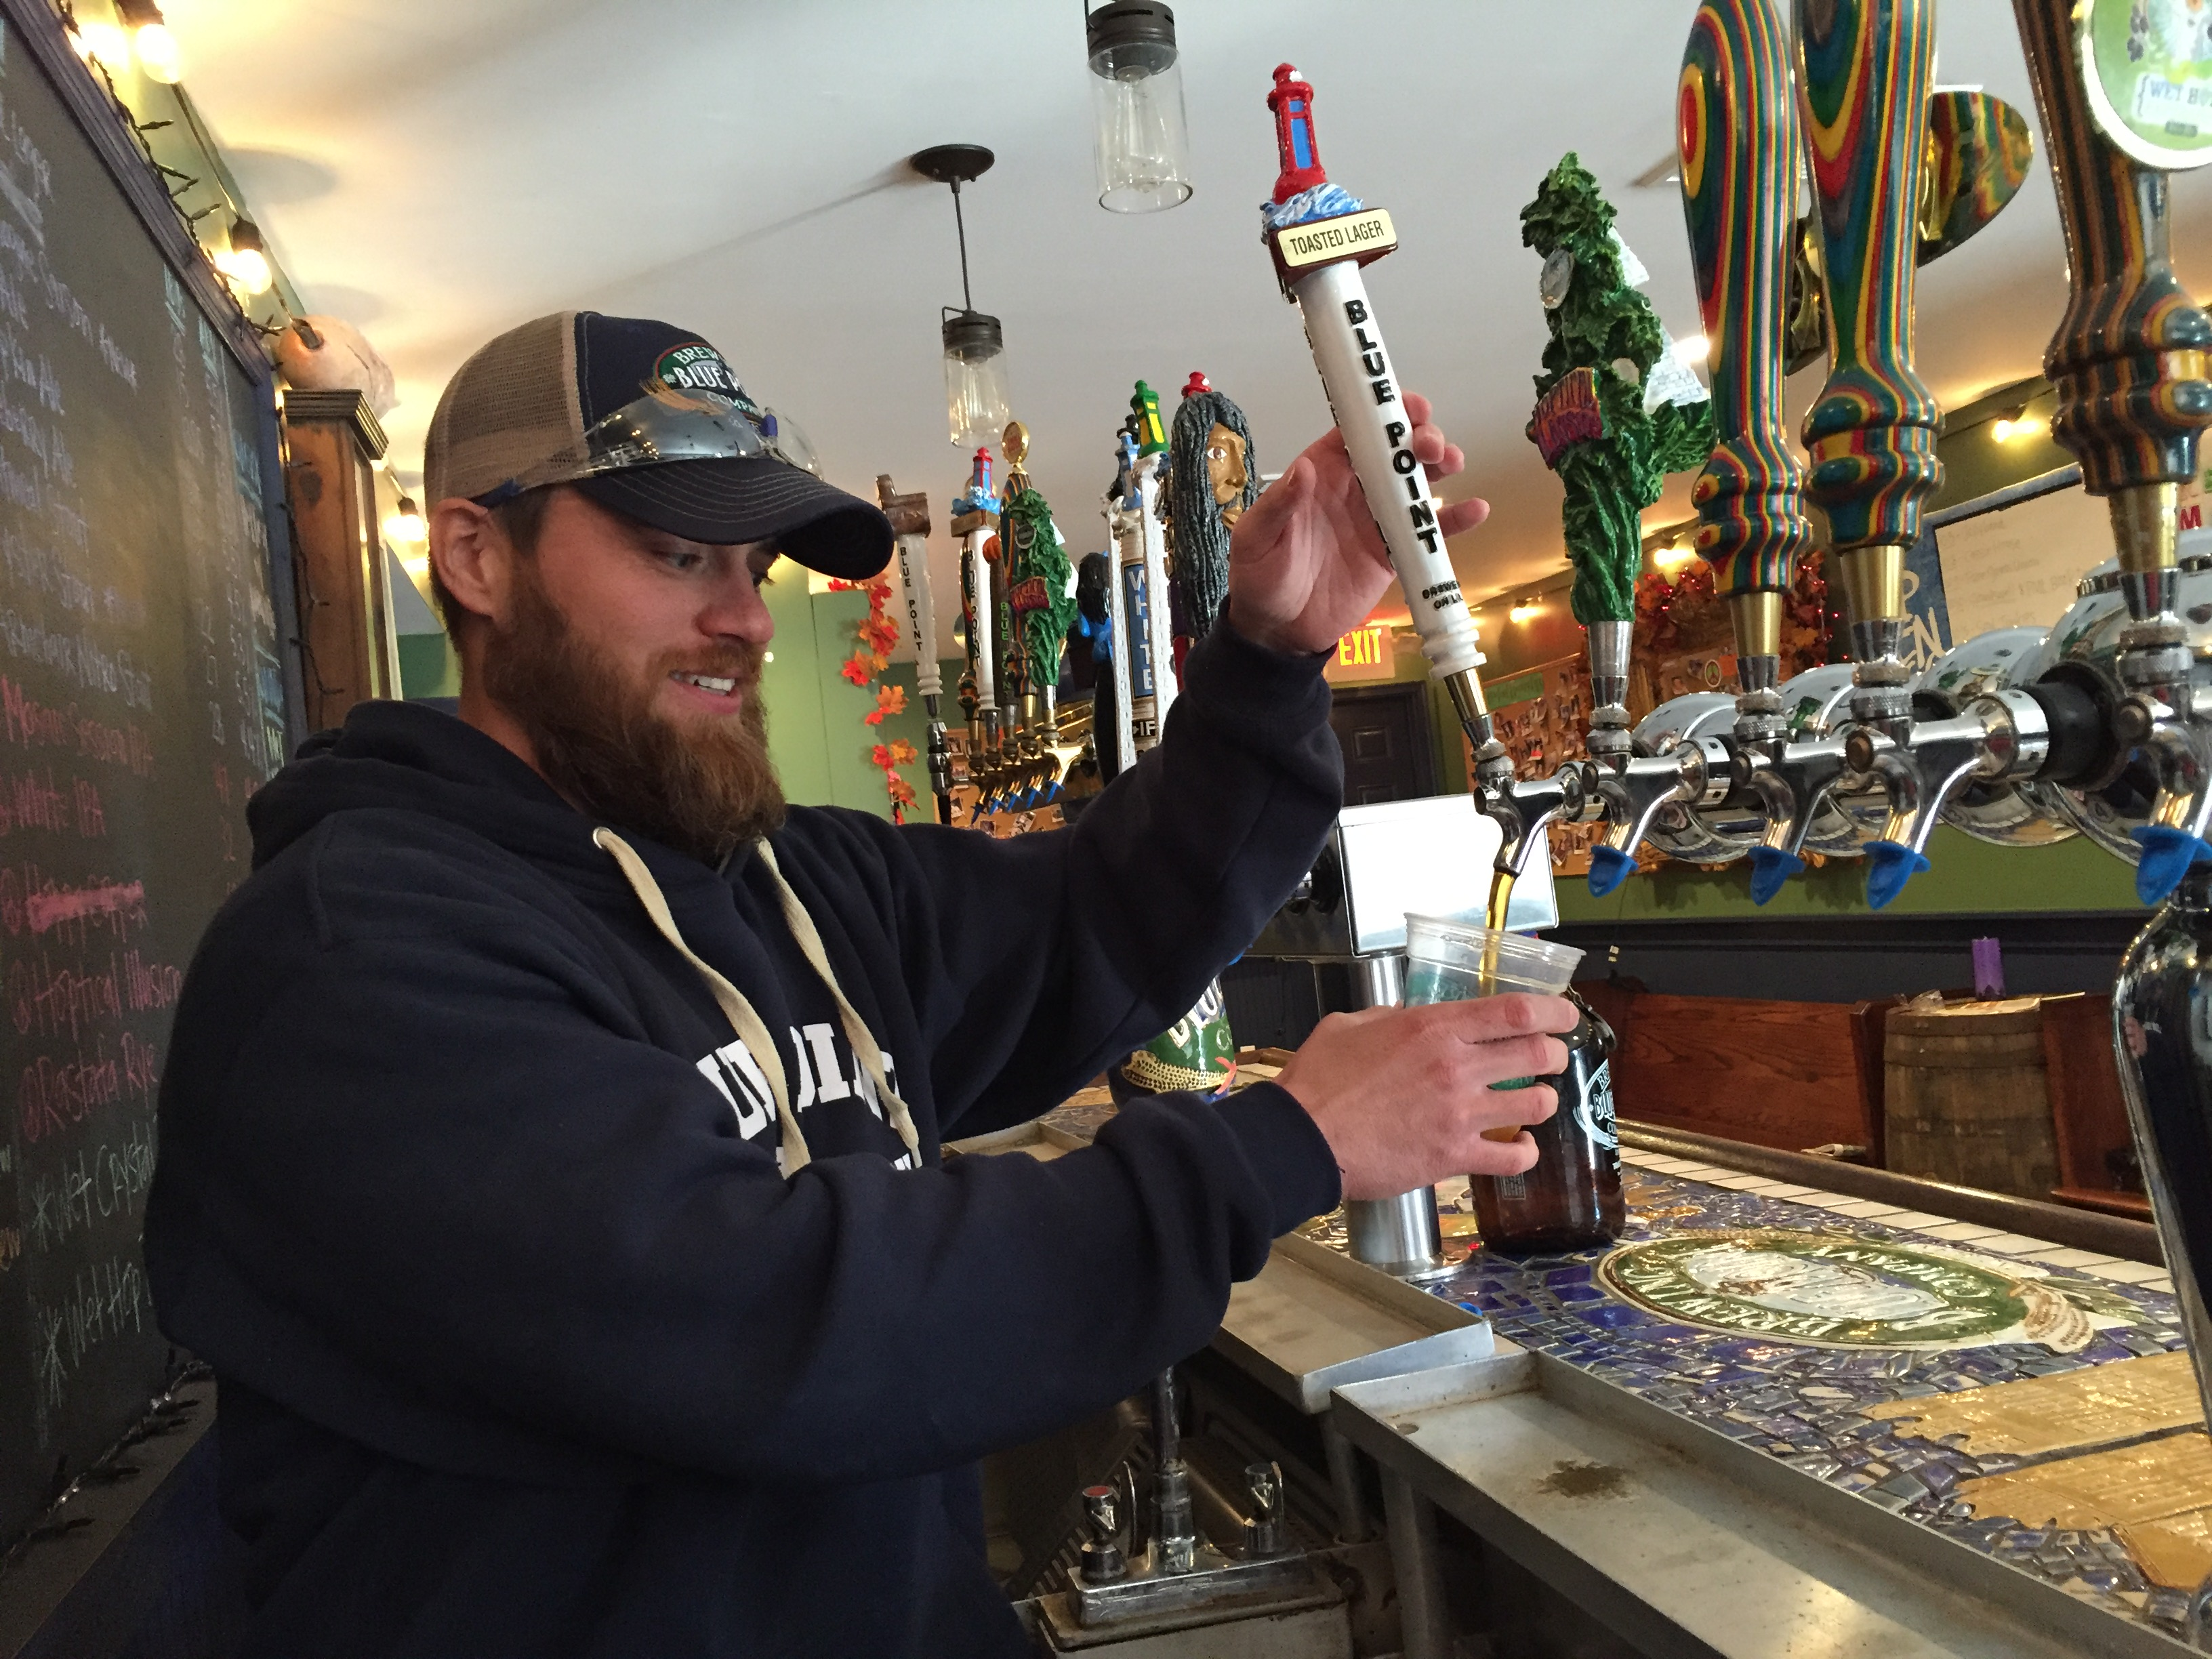 Jansen serves a beer in the tasting room at Blue Point Brewery